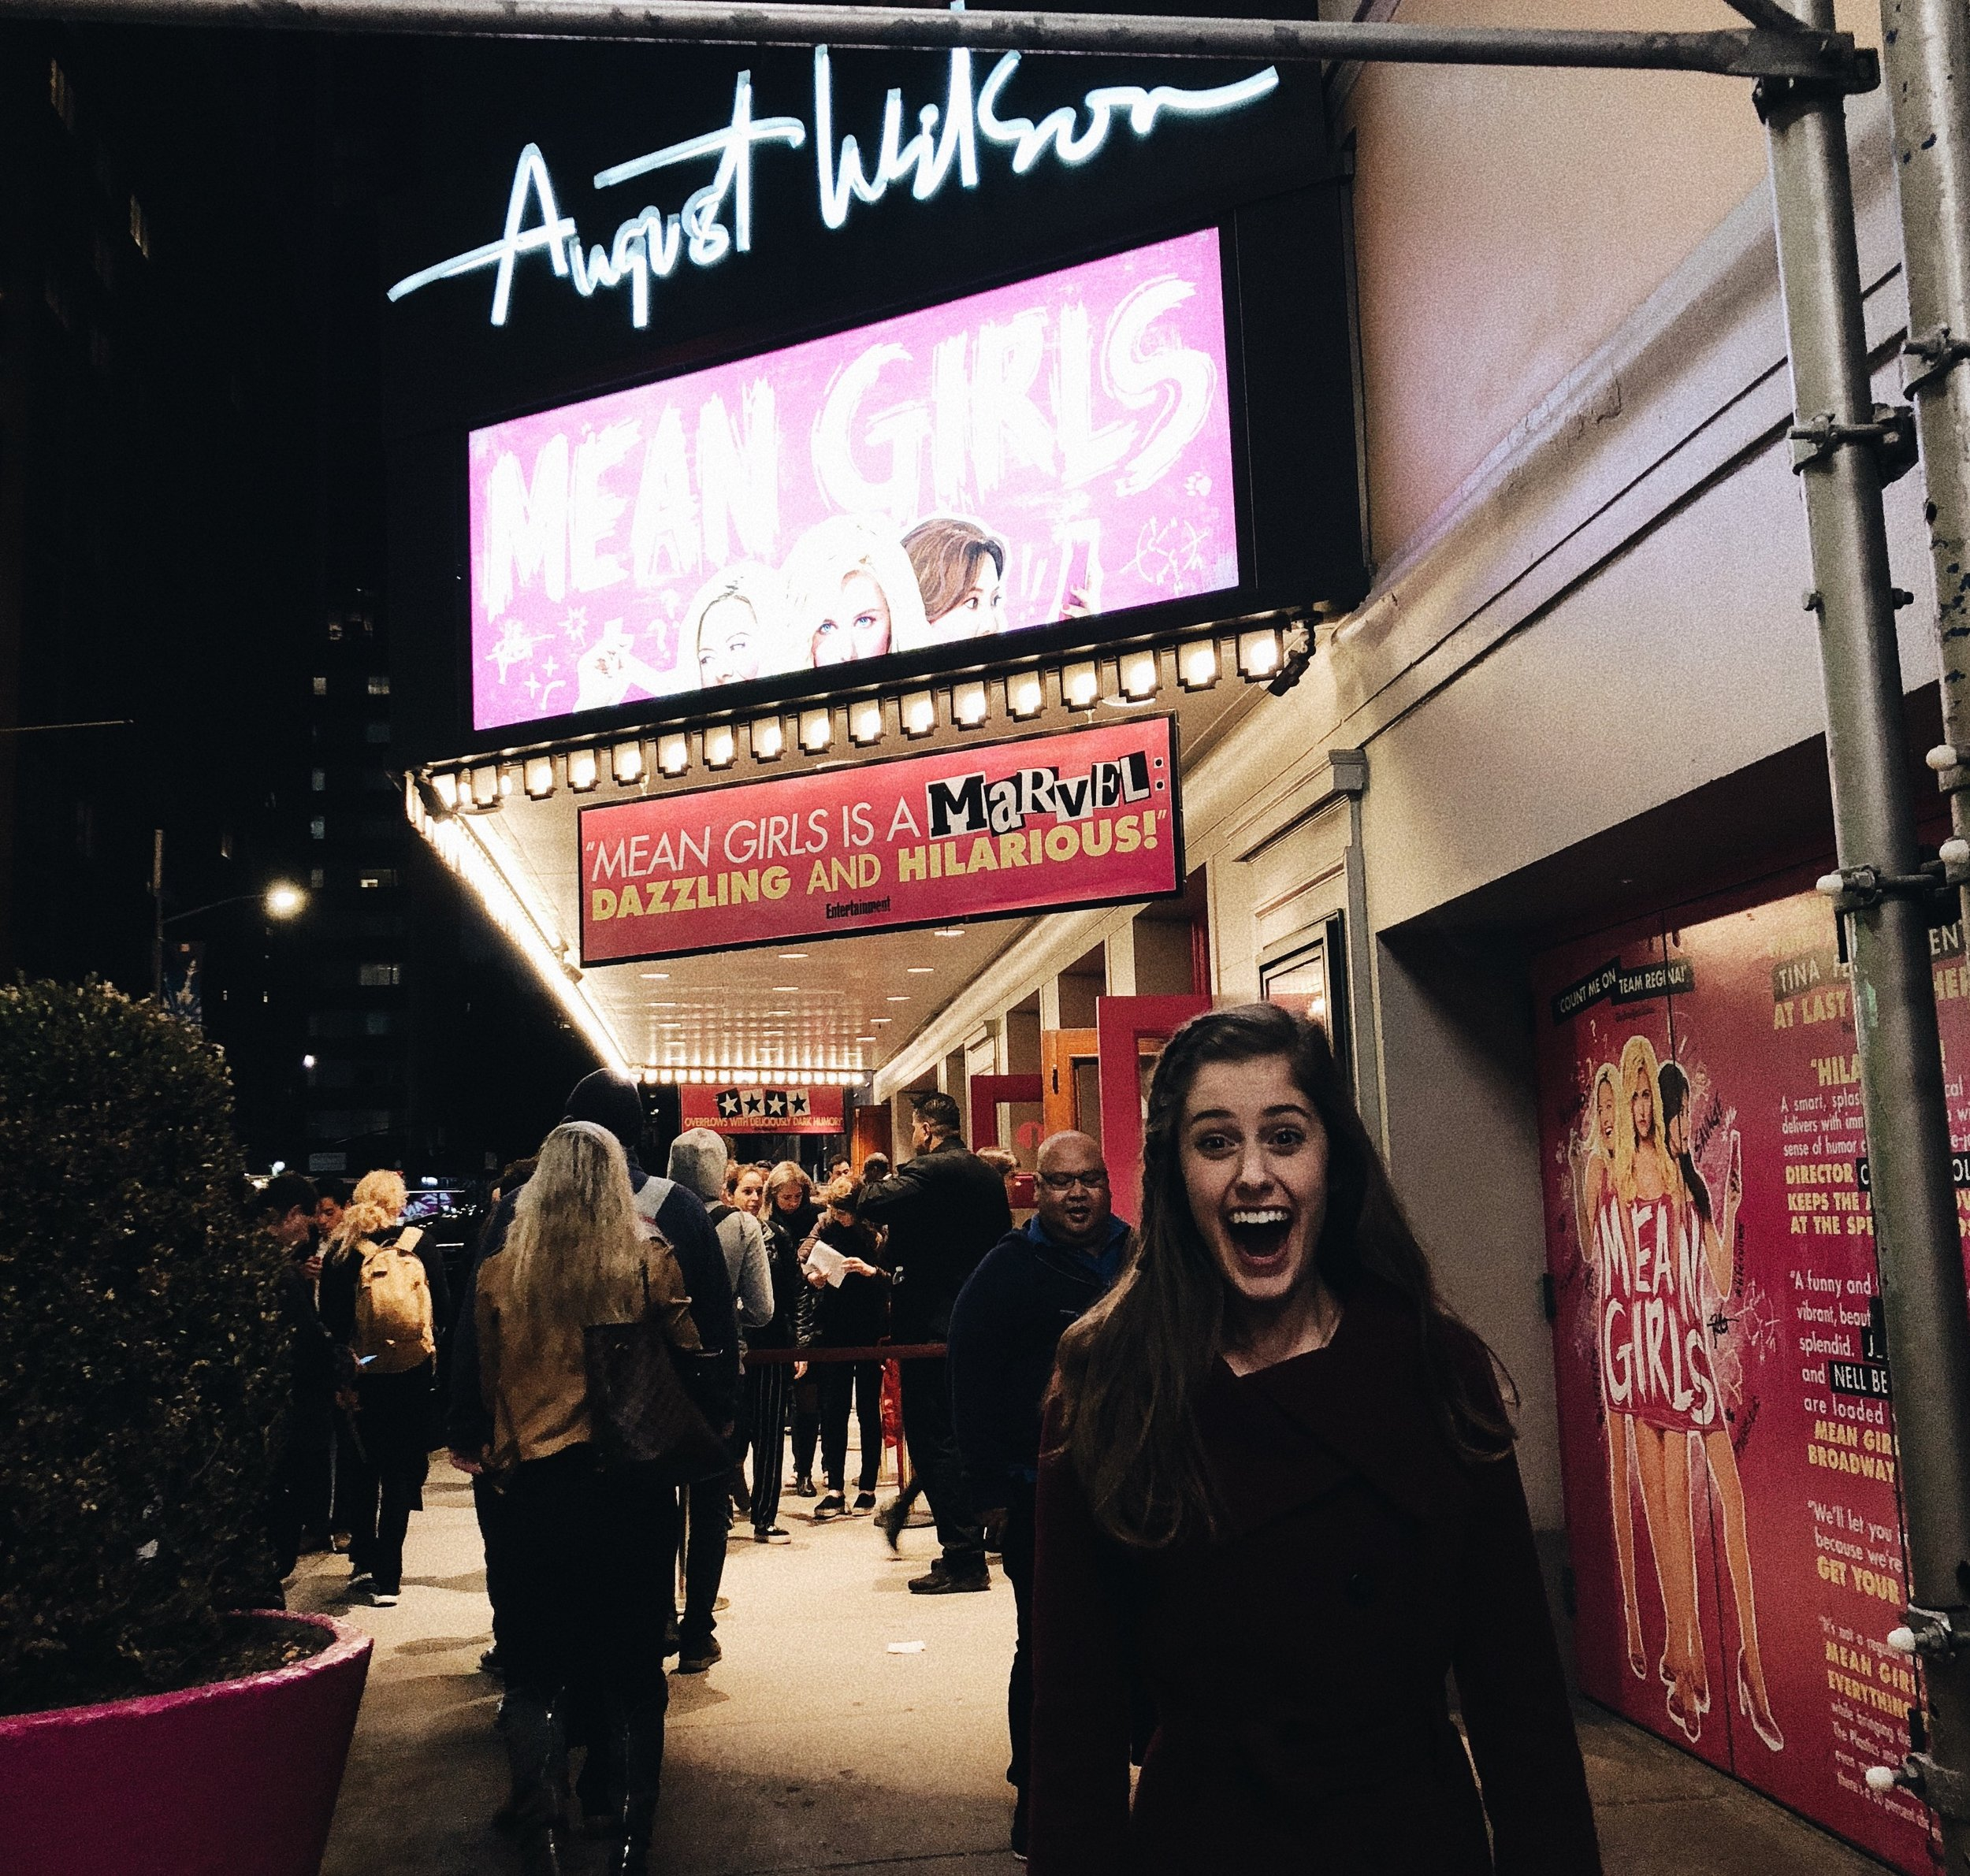 Photo taken by Lucy Given. Samantha winning Broadway Mean Girls Lottery, October 2018.